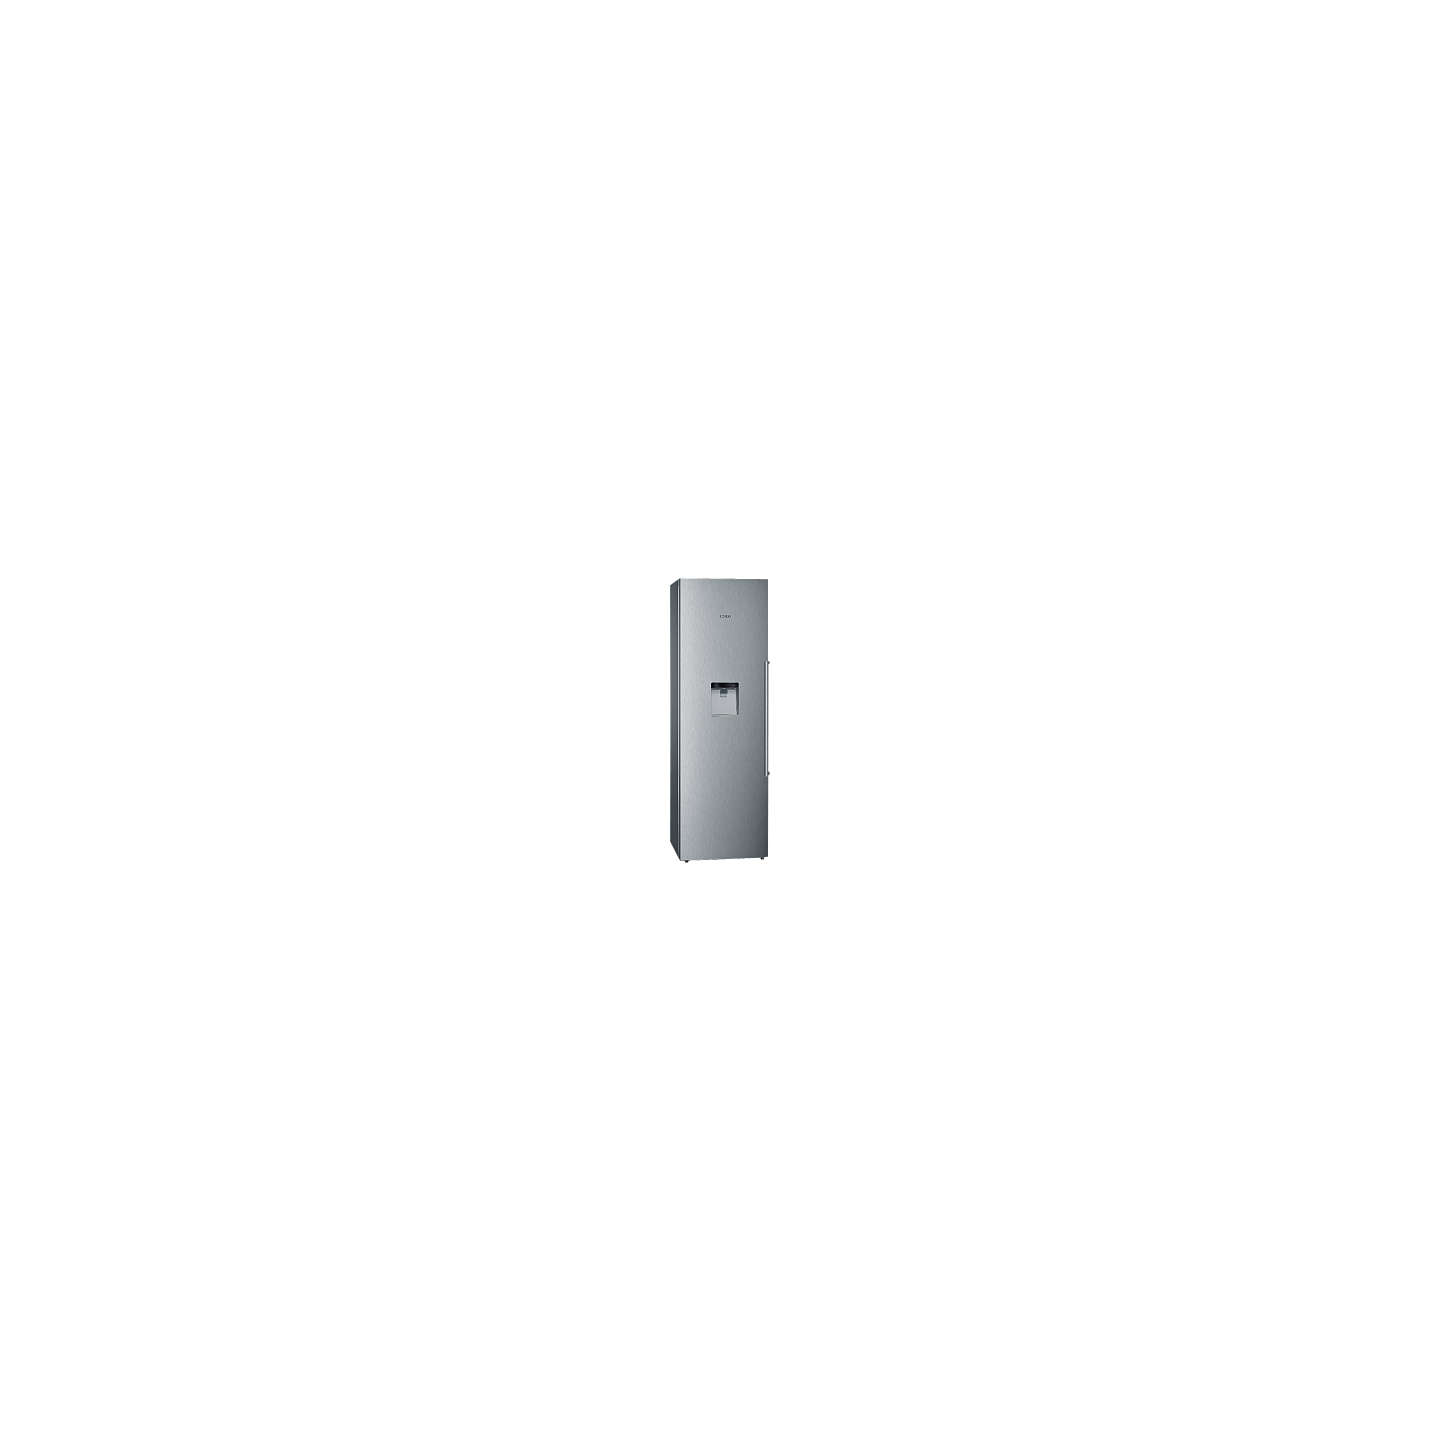 BuySiemens KS36WPI30 Tall Larder Fridge, A++ Energy Rating, 60cm Wide, Stainless Steel Online at johnlewis.com